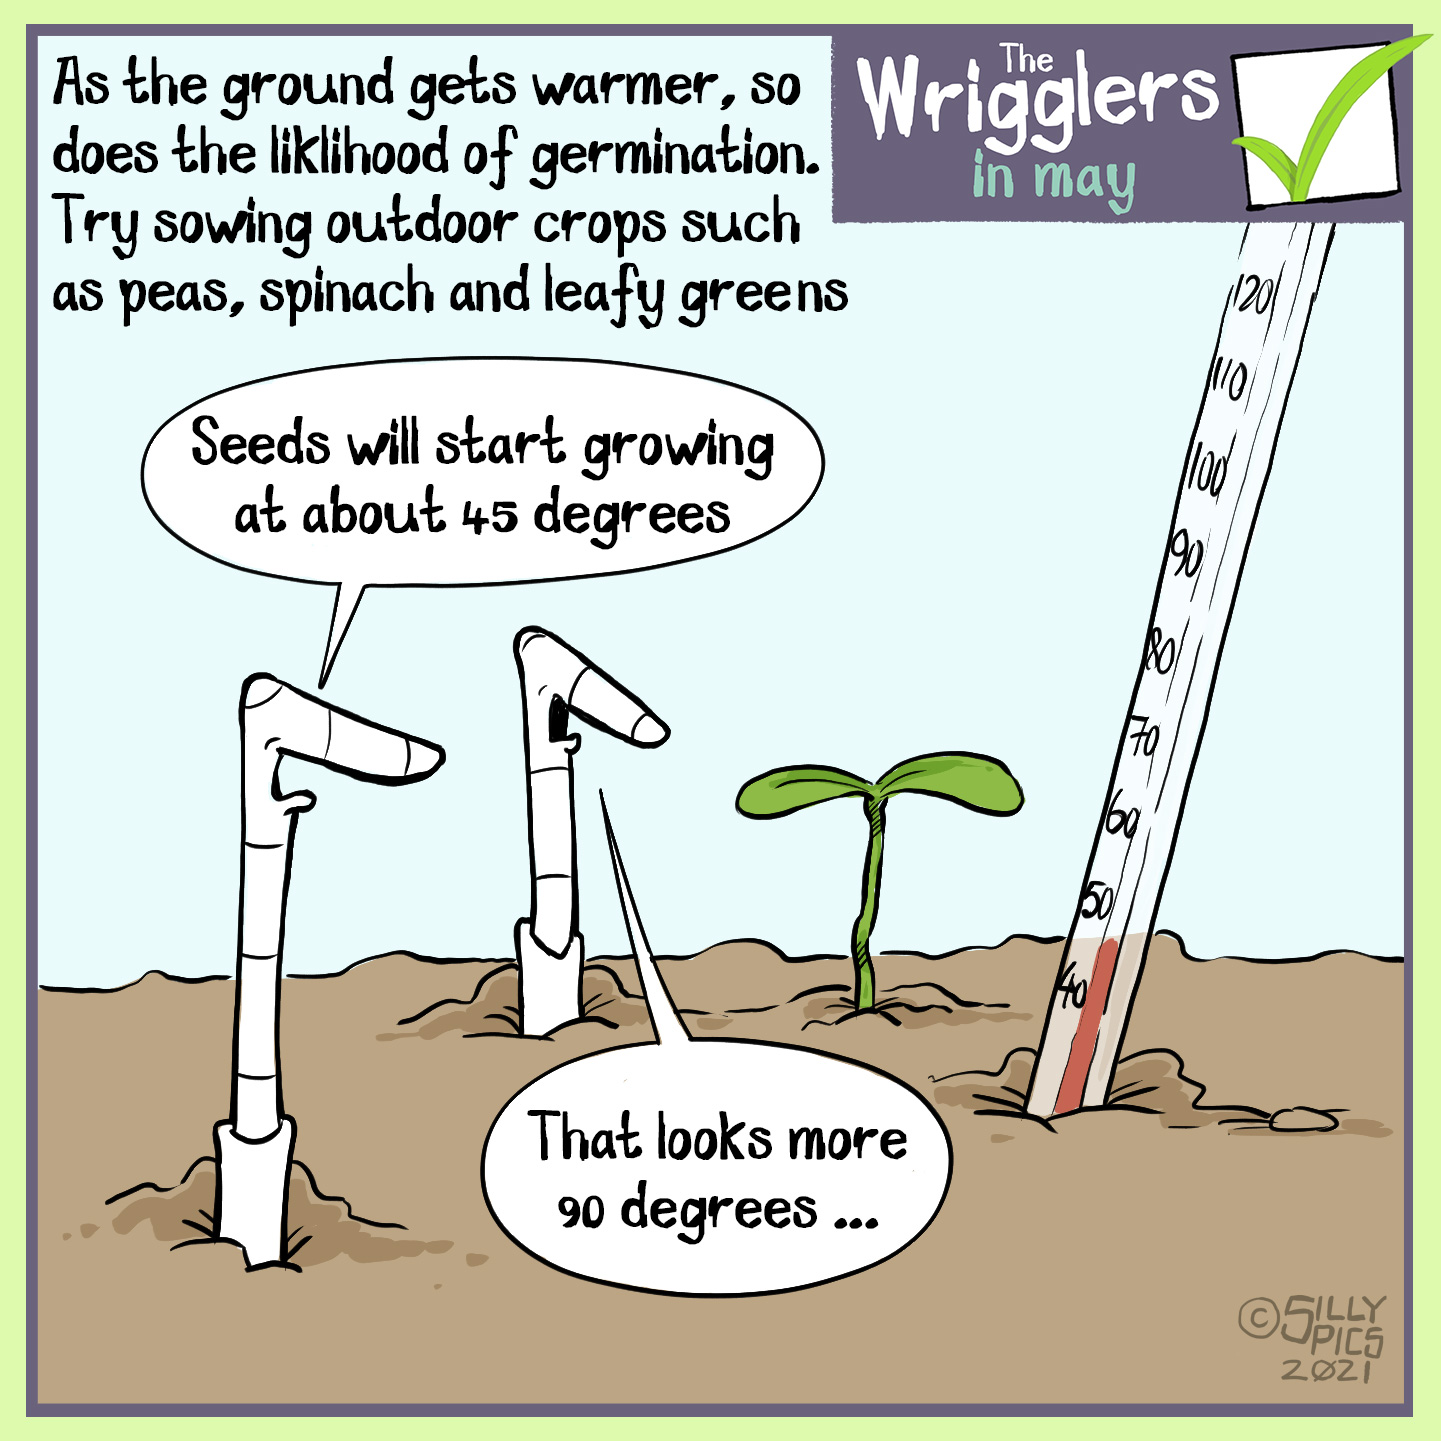 """As the ground gets warmer now, so does the likelihood of germination. Try sowing outdoor crops such as peas and leafy greens. The cartoon shows two worms in the soil with a seedling growing and a thermometer in the soil with the temperature of 45 degrees. One worm says to the other, """" Seeds will start growing at about 45 degrees."""" The other worm, looking at the seedling growing perpendicular to the ground says, """" That looks more like 90 degrees"""""""